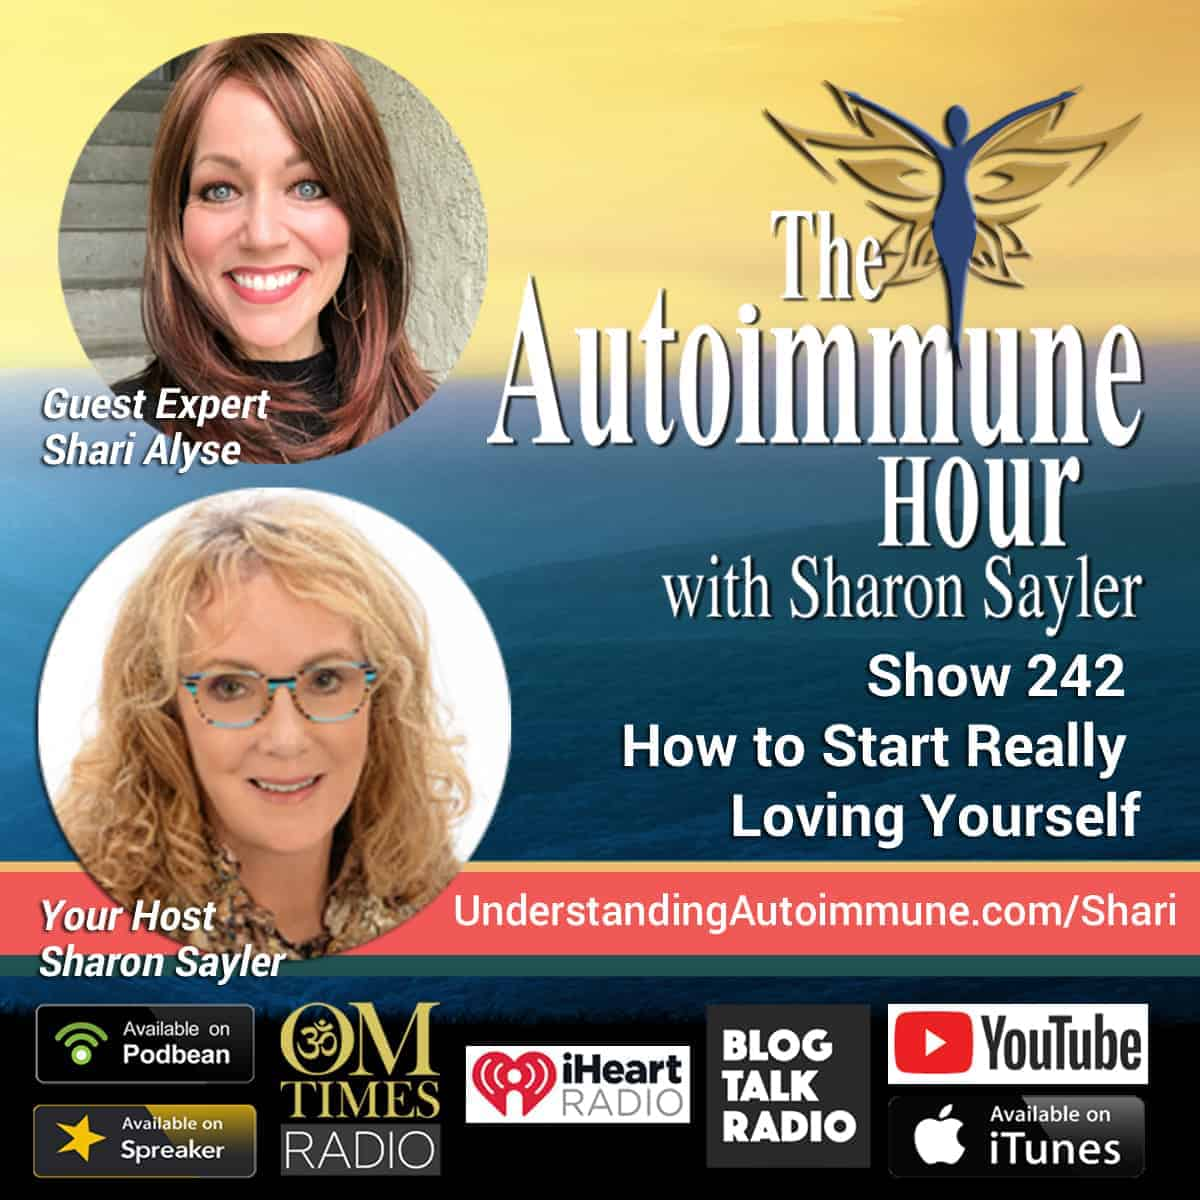 Thank you, Shari Alyse, for the amazing interview. You shared so many great tips and ideas for great